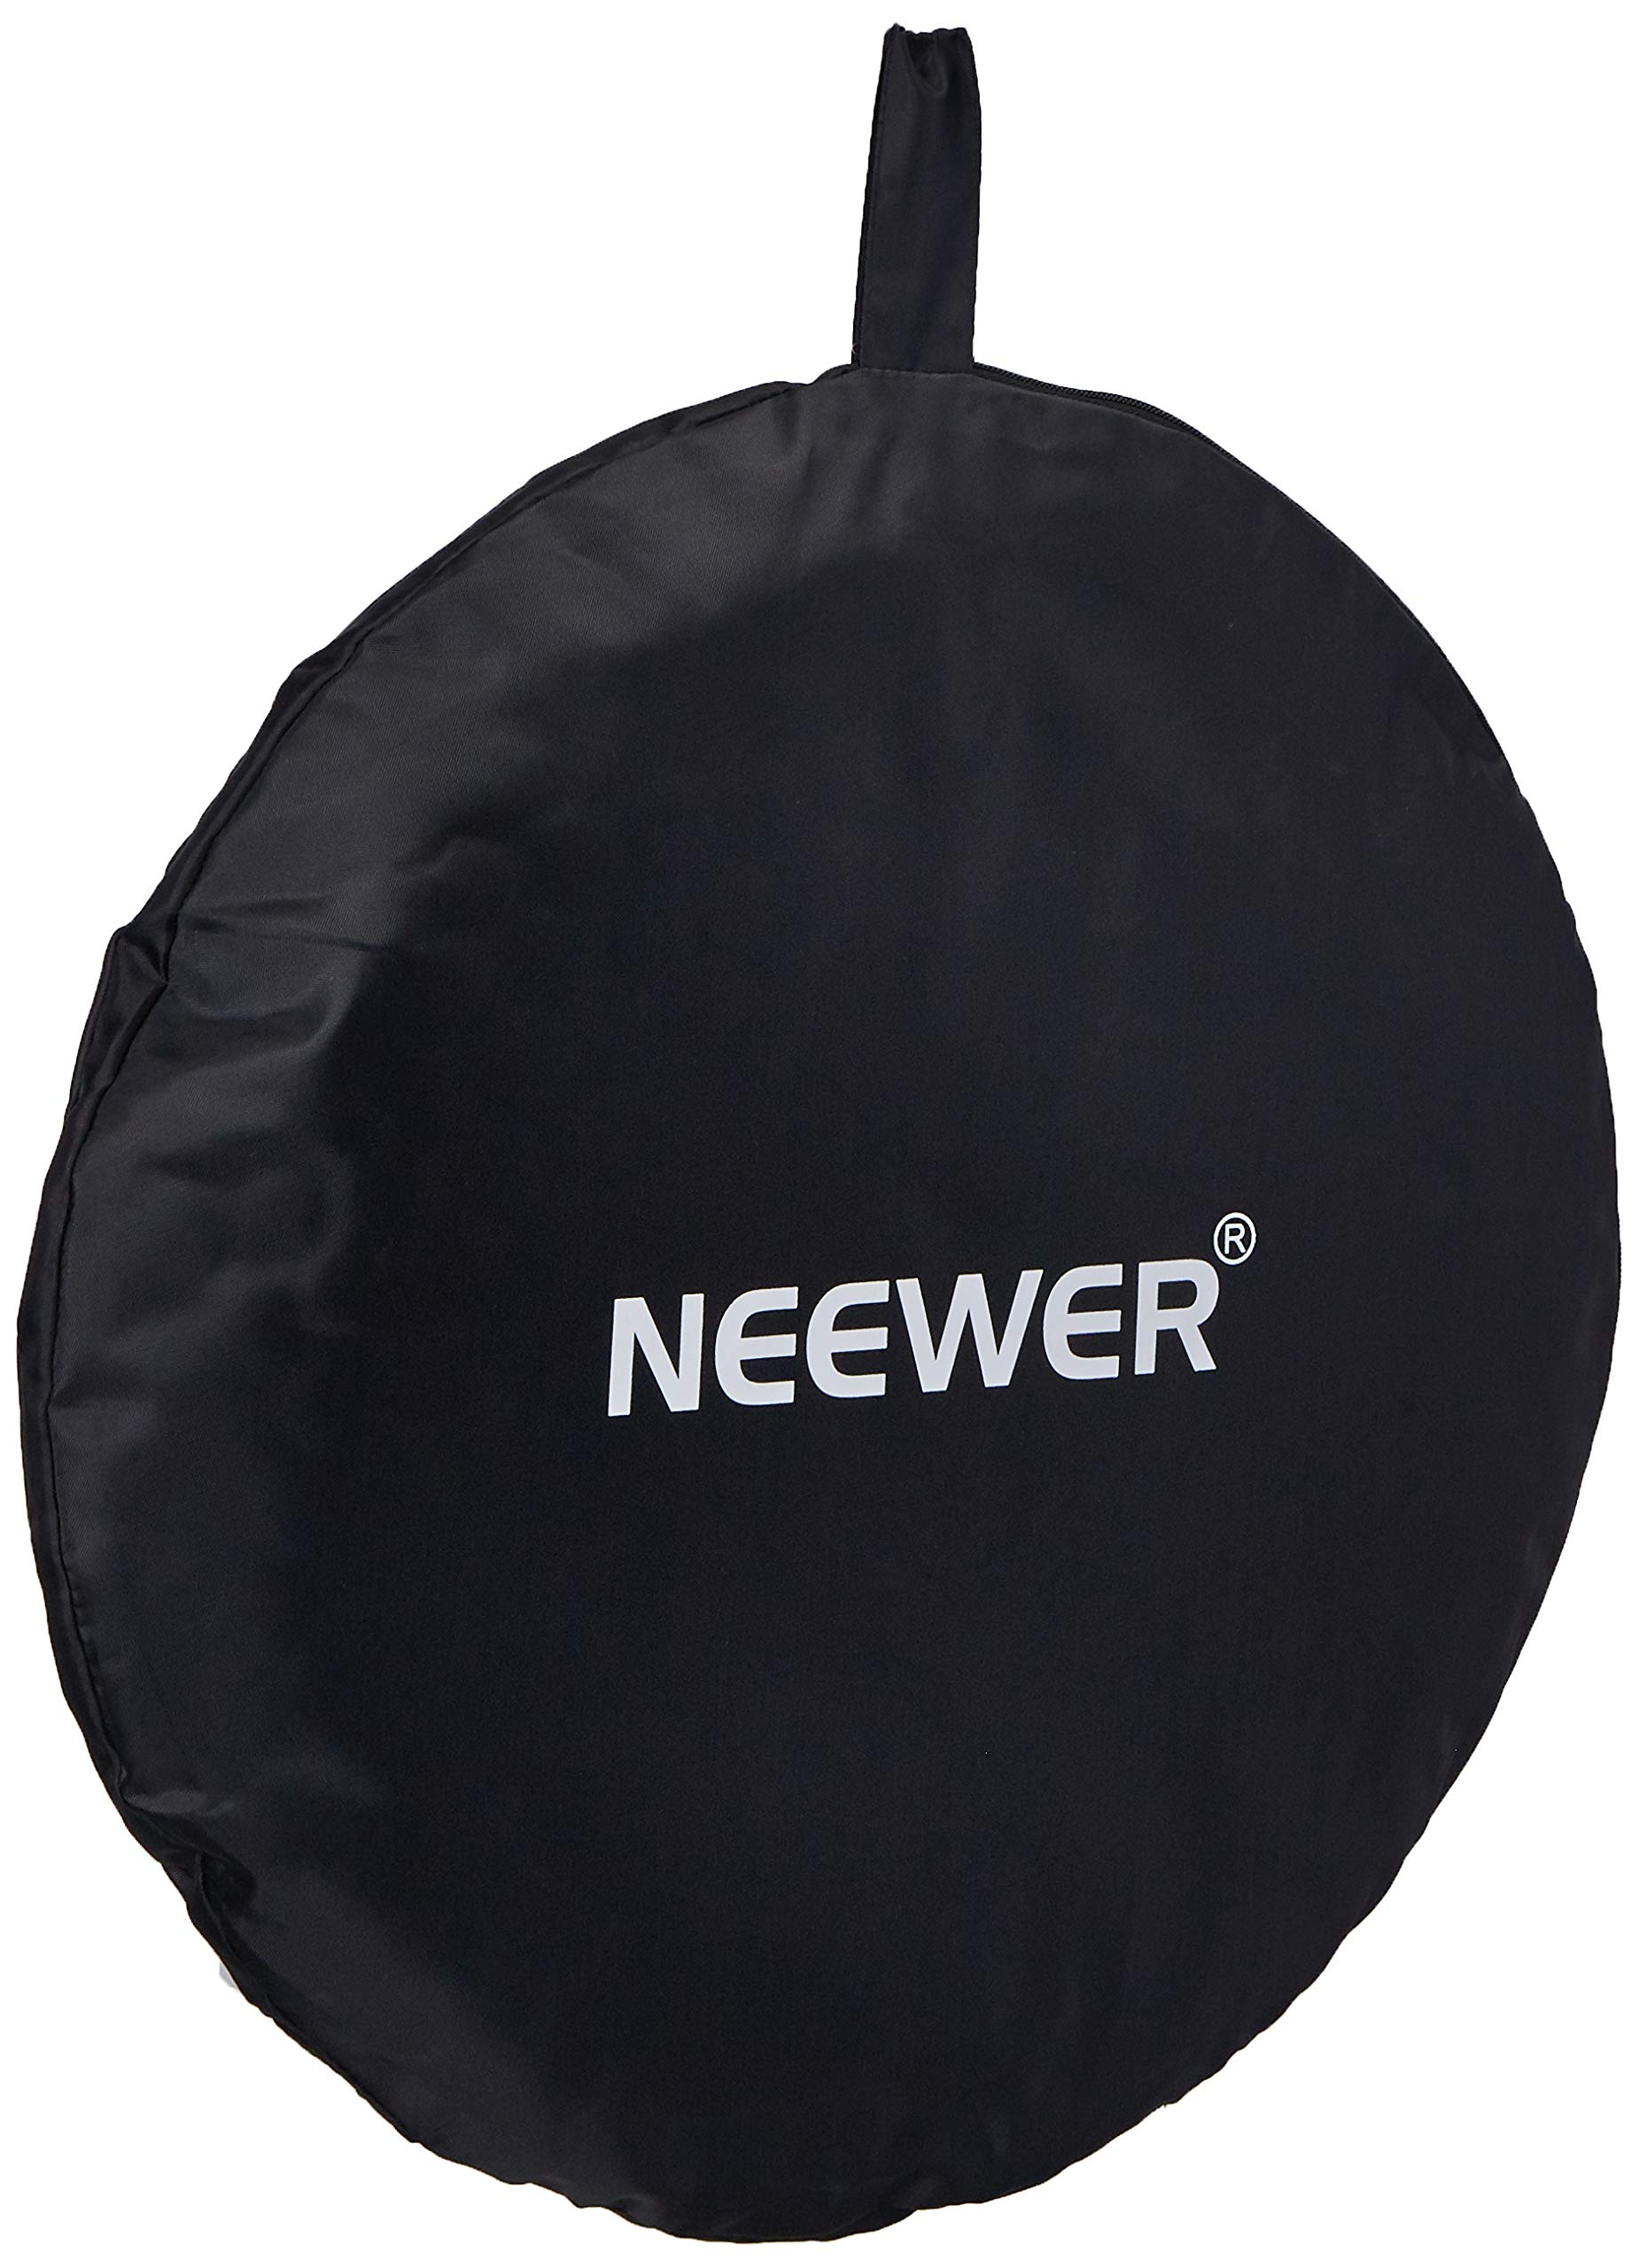 Neewer 5 in 1 Portable Multi 40''x 60''/100 x 150CM Camera Lighting Reflector/Diffuser Kit with Carrying Case for Photpgraphy by Neewer (Image #3)